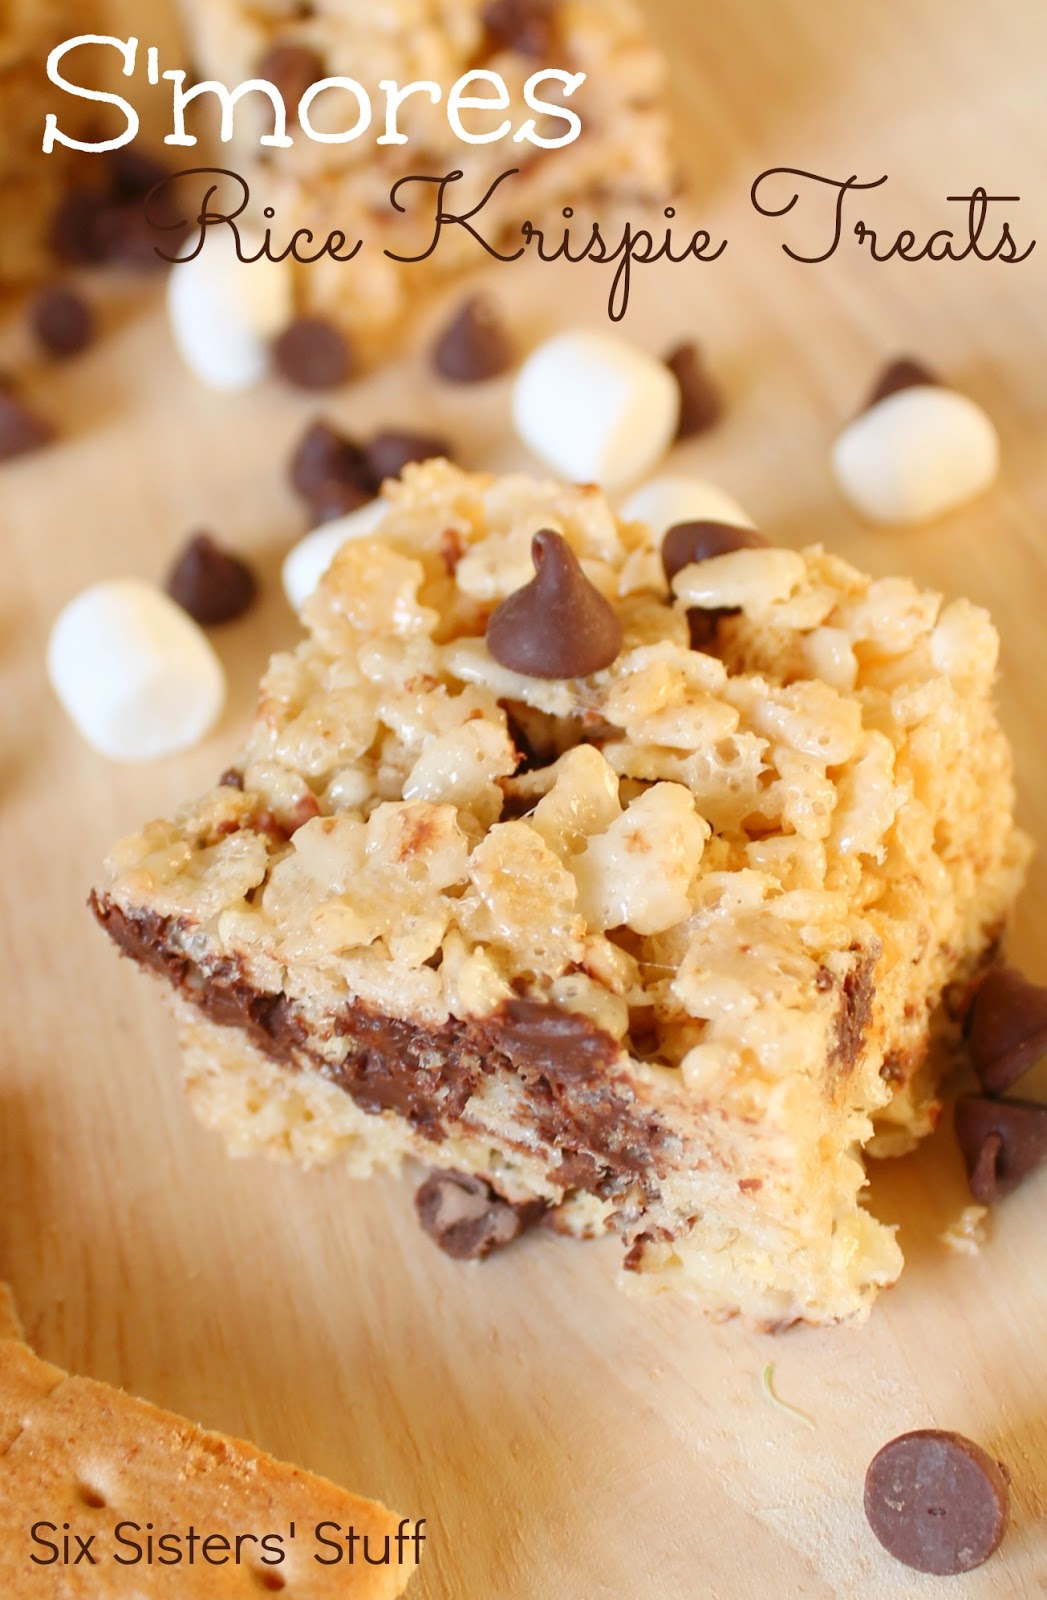 mores Rice Krispie Treats Recipe | Six Sisters' Stuff